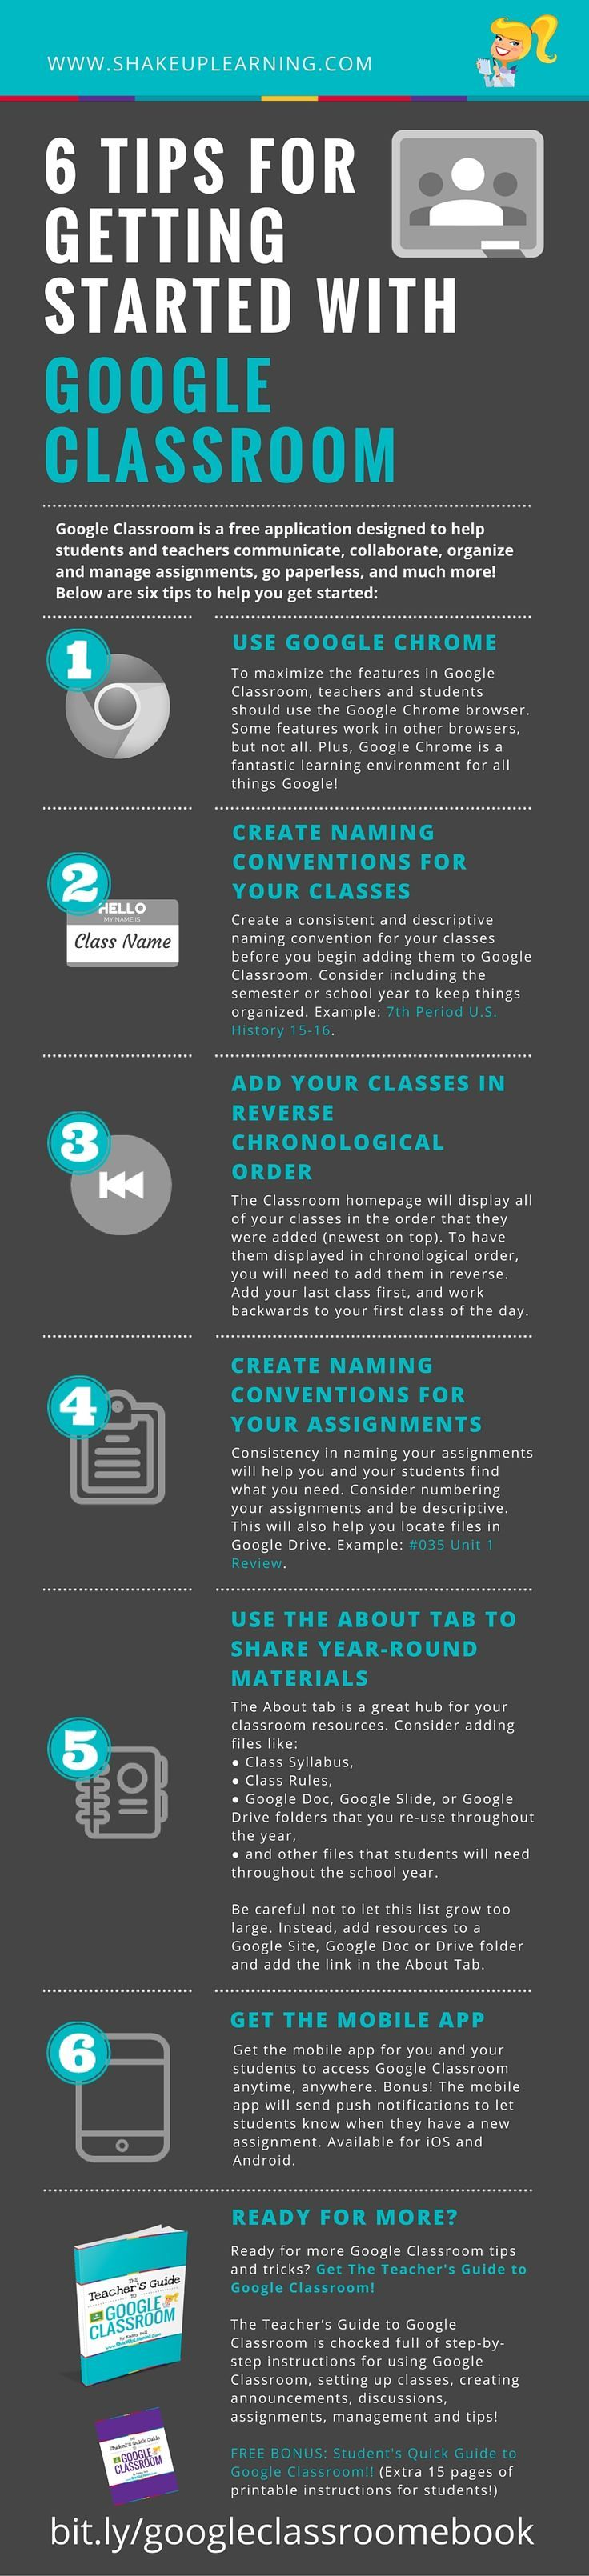 6 Tips for Getting Started with Google Classroom [infographic} - Ready to get started with Google Classroom? These six tips will set you up for success and help you avoid common missteps, save you time, and help you successfully implement Google Classroom!